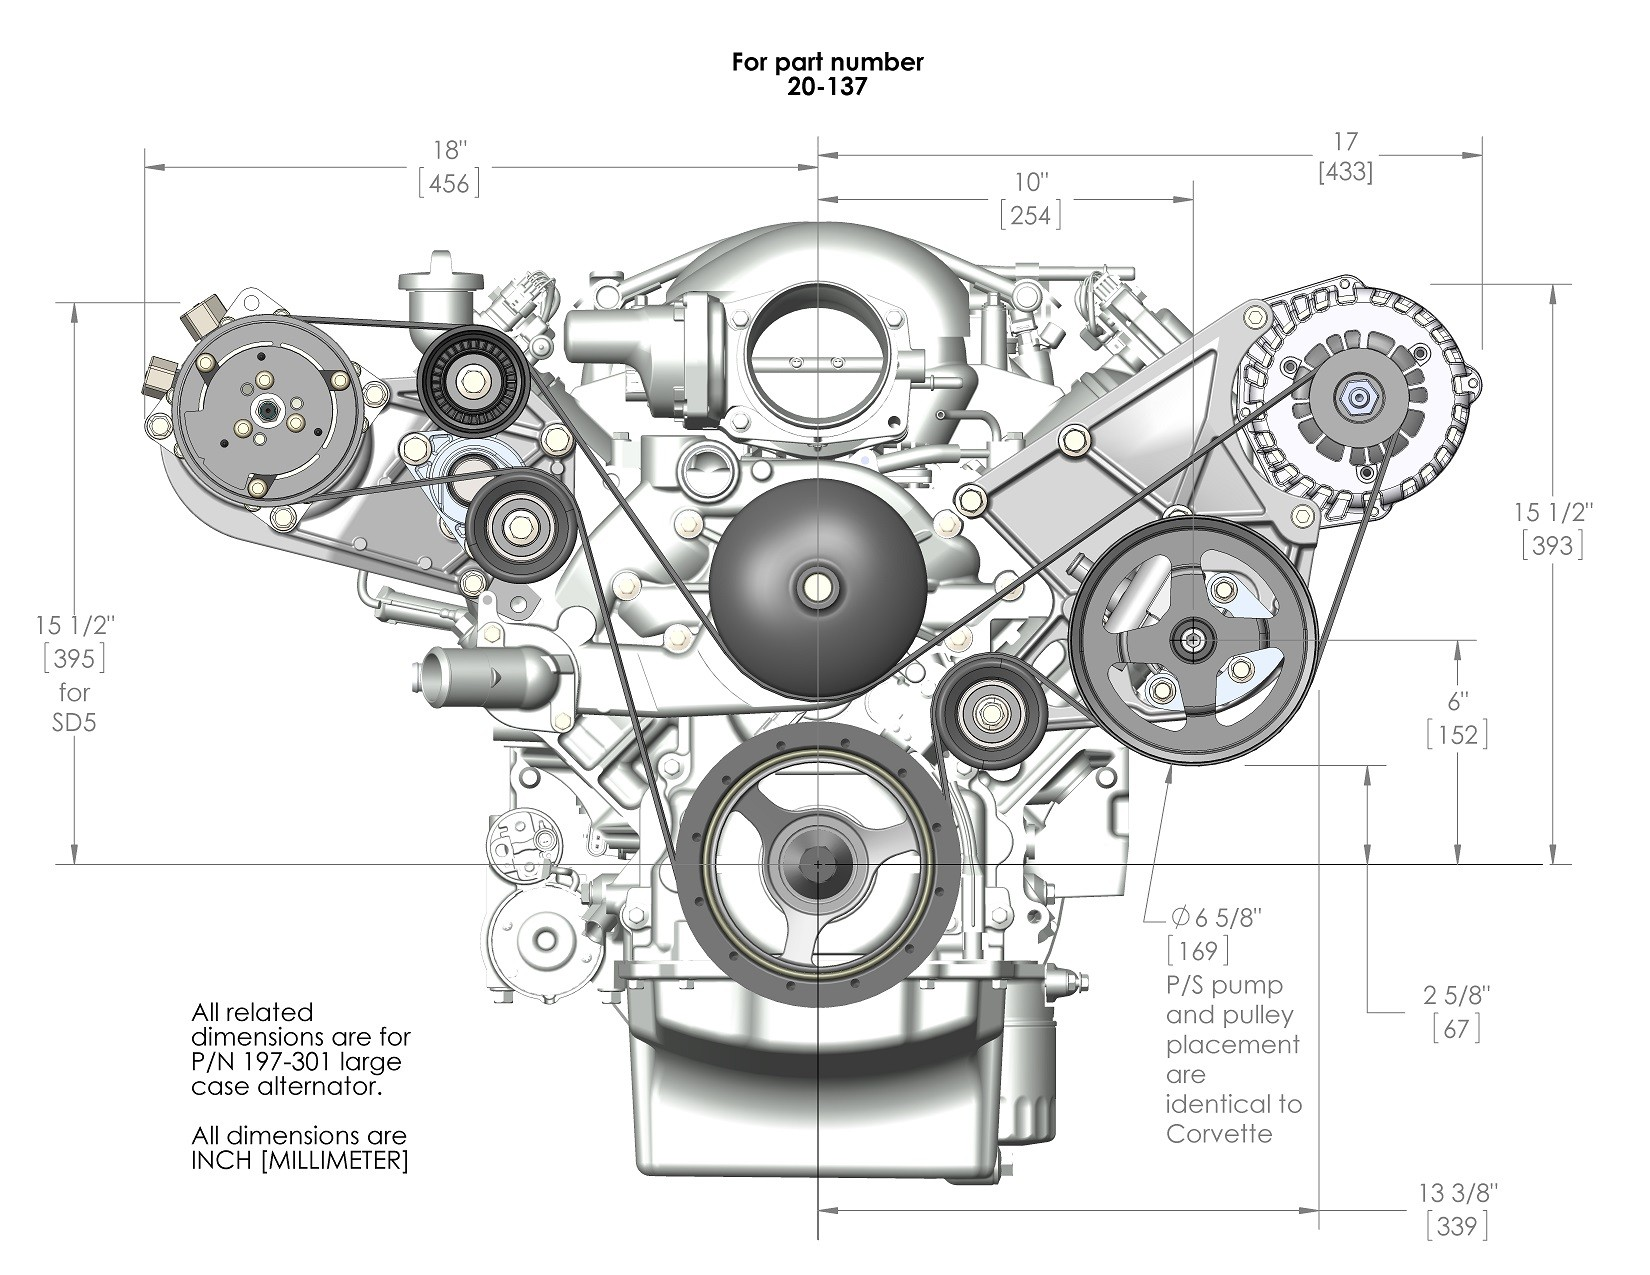 5 3 Vortec Engine Diagram Awesome 7 Wiring Harness 4 20 137 Dimensions1 16501275 Ls Engines Pinterest Of